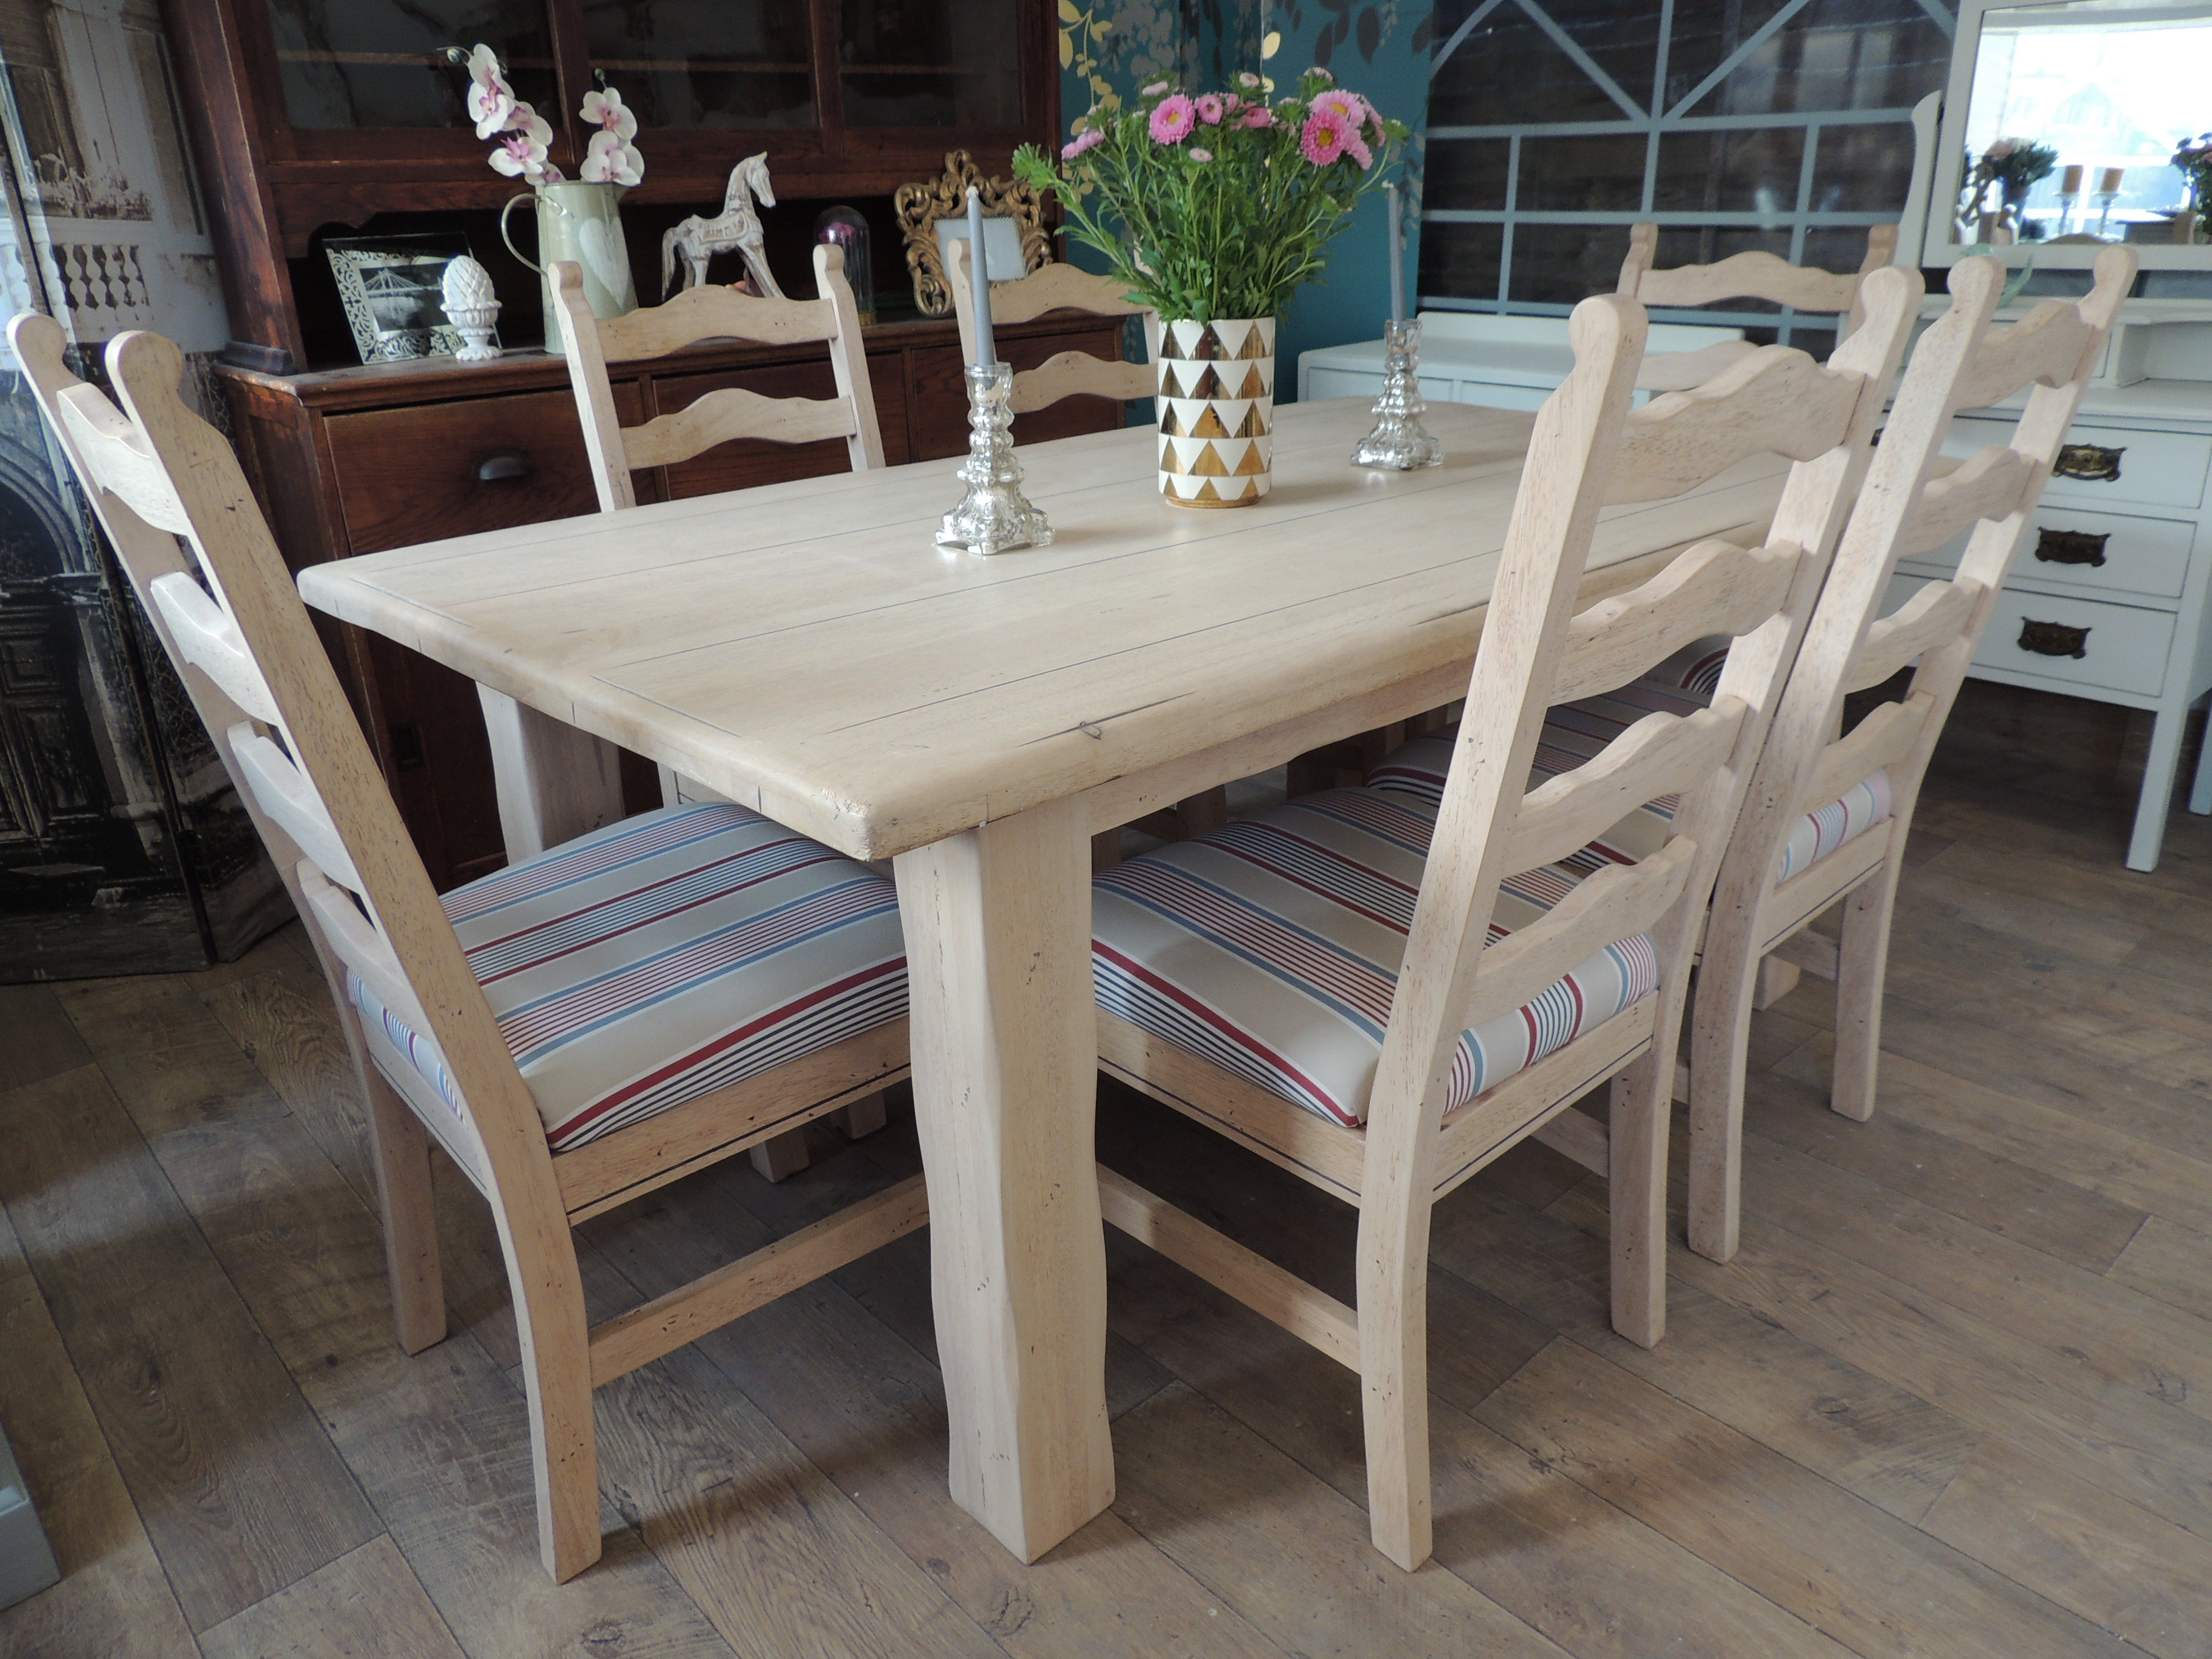 Lovely Rustic Farmhouse Style Dining Table With Six Chairs